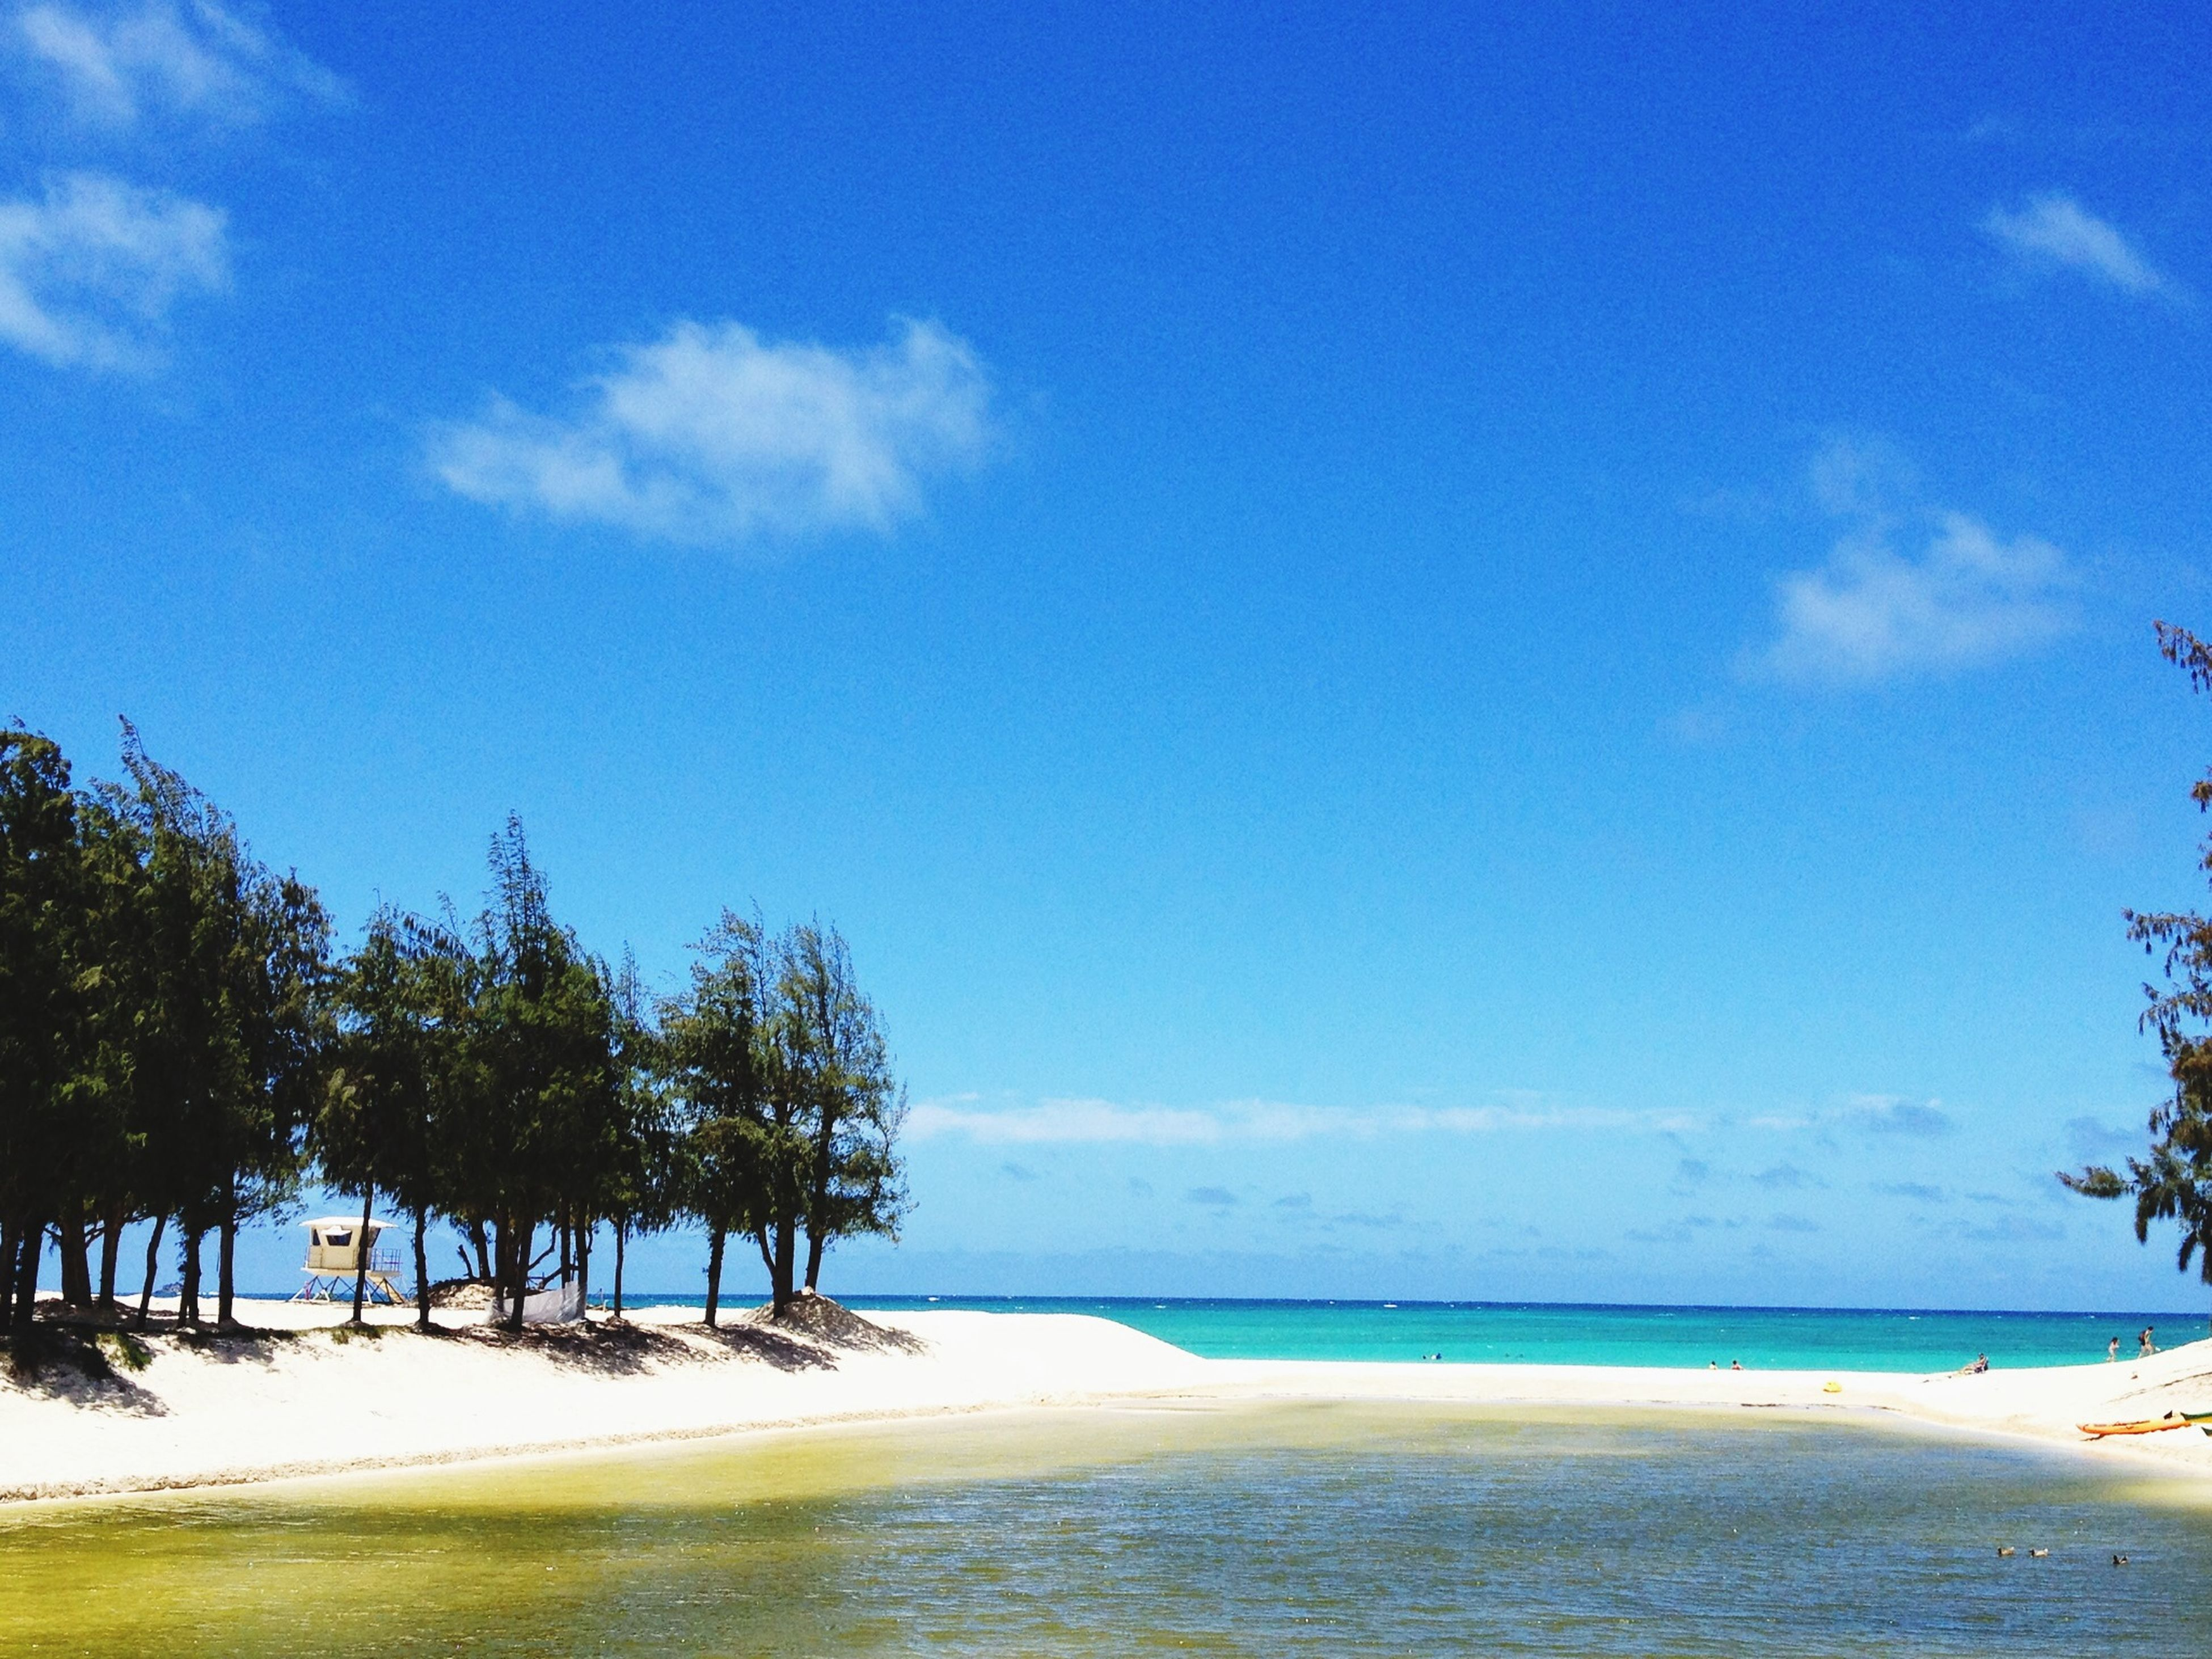 sea, beach, water, tranquil scene, tranquility, sky, scenics, beauty in nature, horizon over water, sand, tree, shore, blue, nature, cloud, idyllic, cloud - sky, palm tree, coastline, vacations